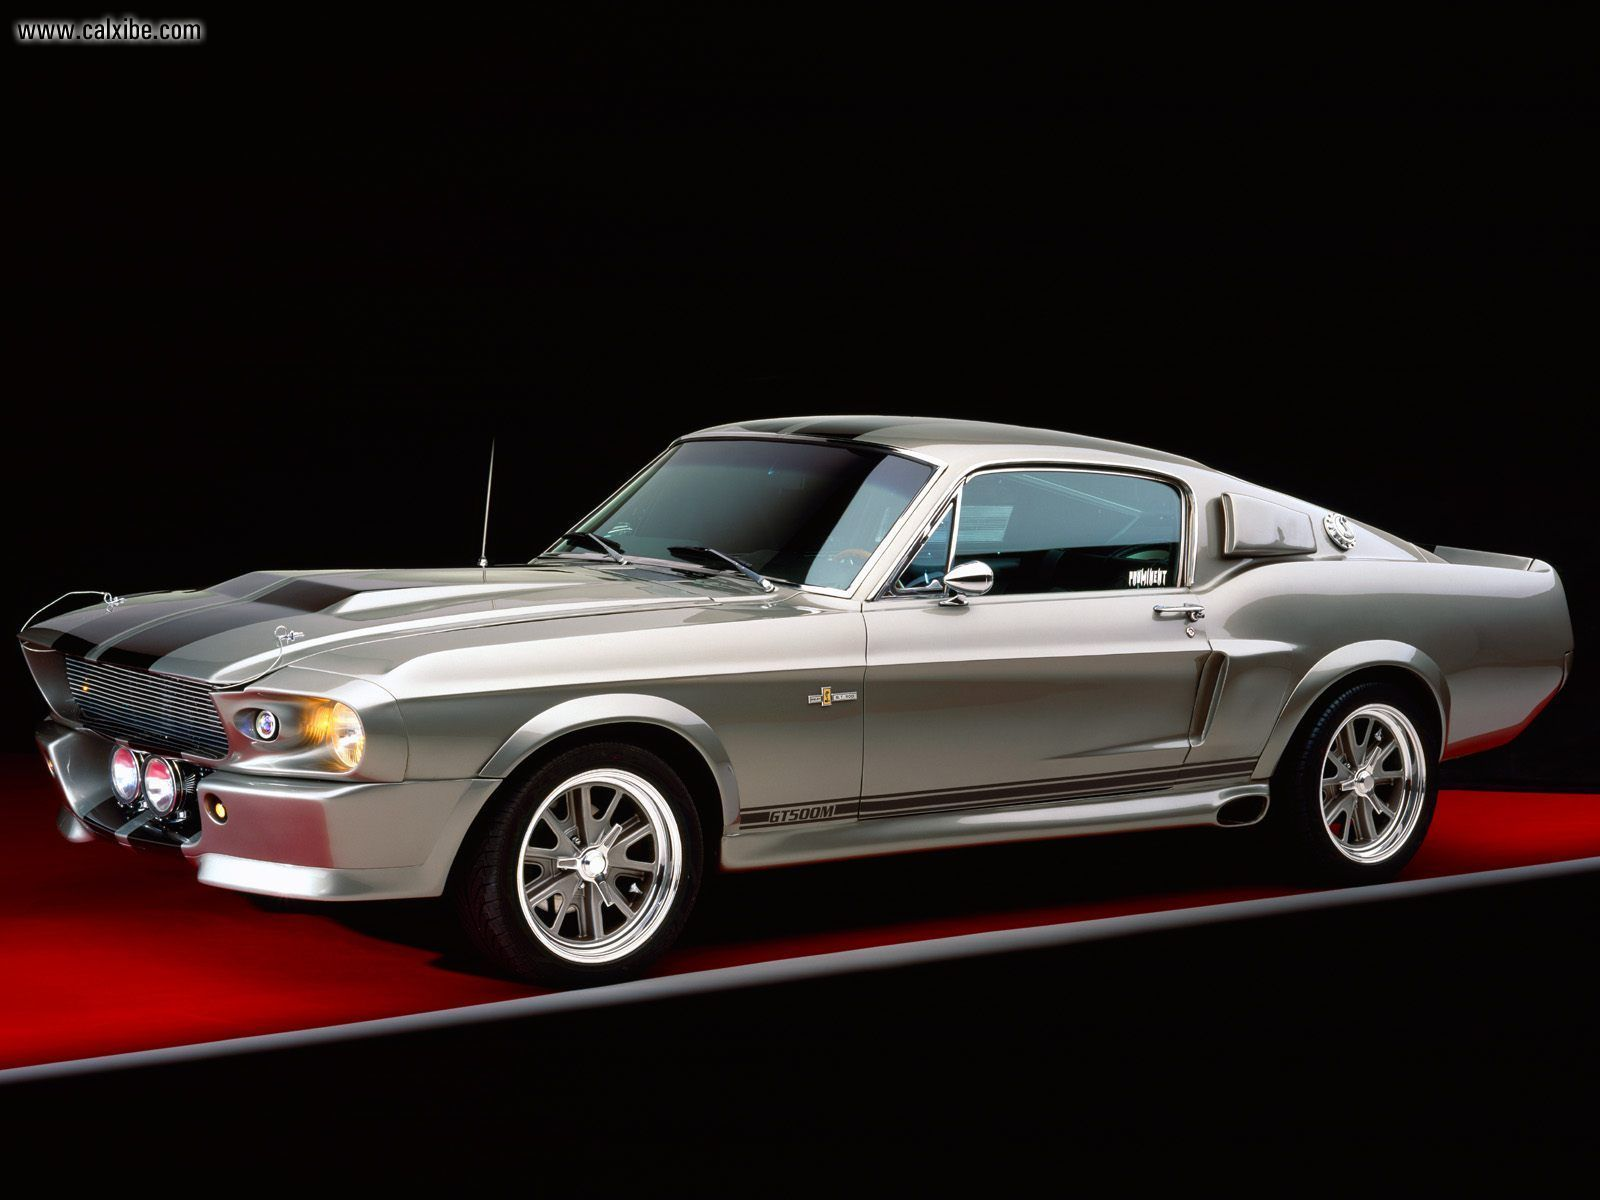 luxury cars ford mustang shelby wallpapers. Black Bedroom Furniture Sets. Home Design Ideas